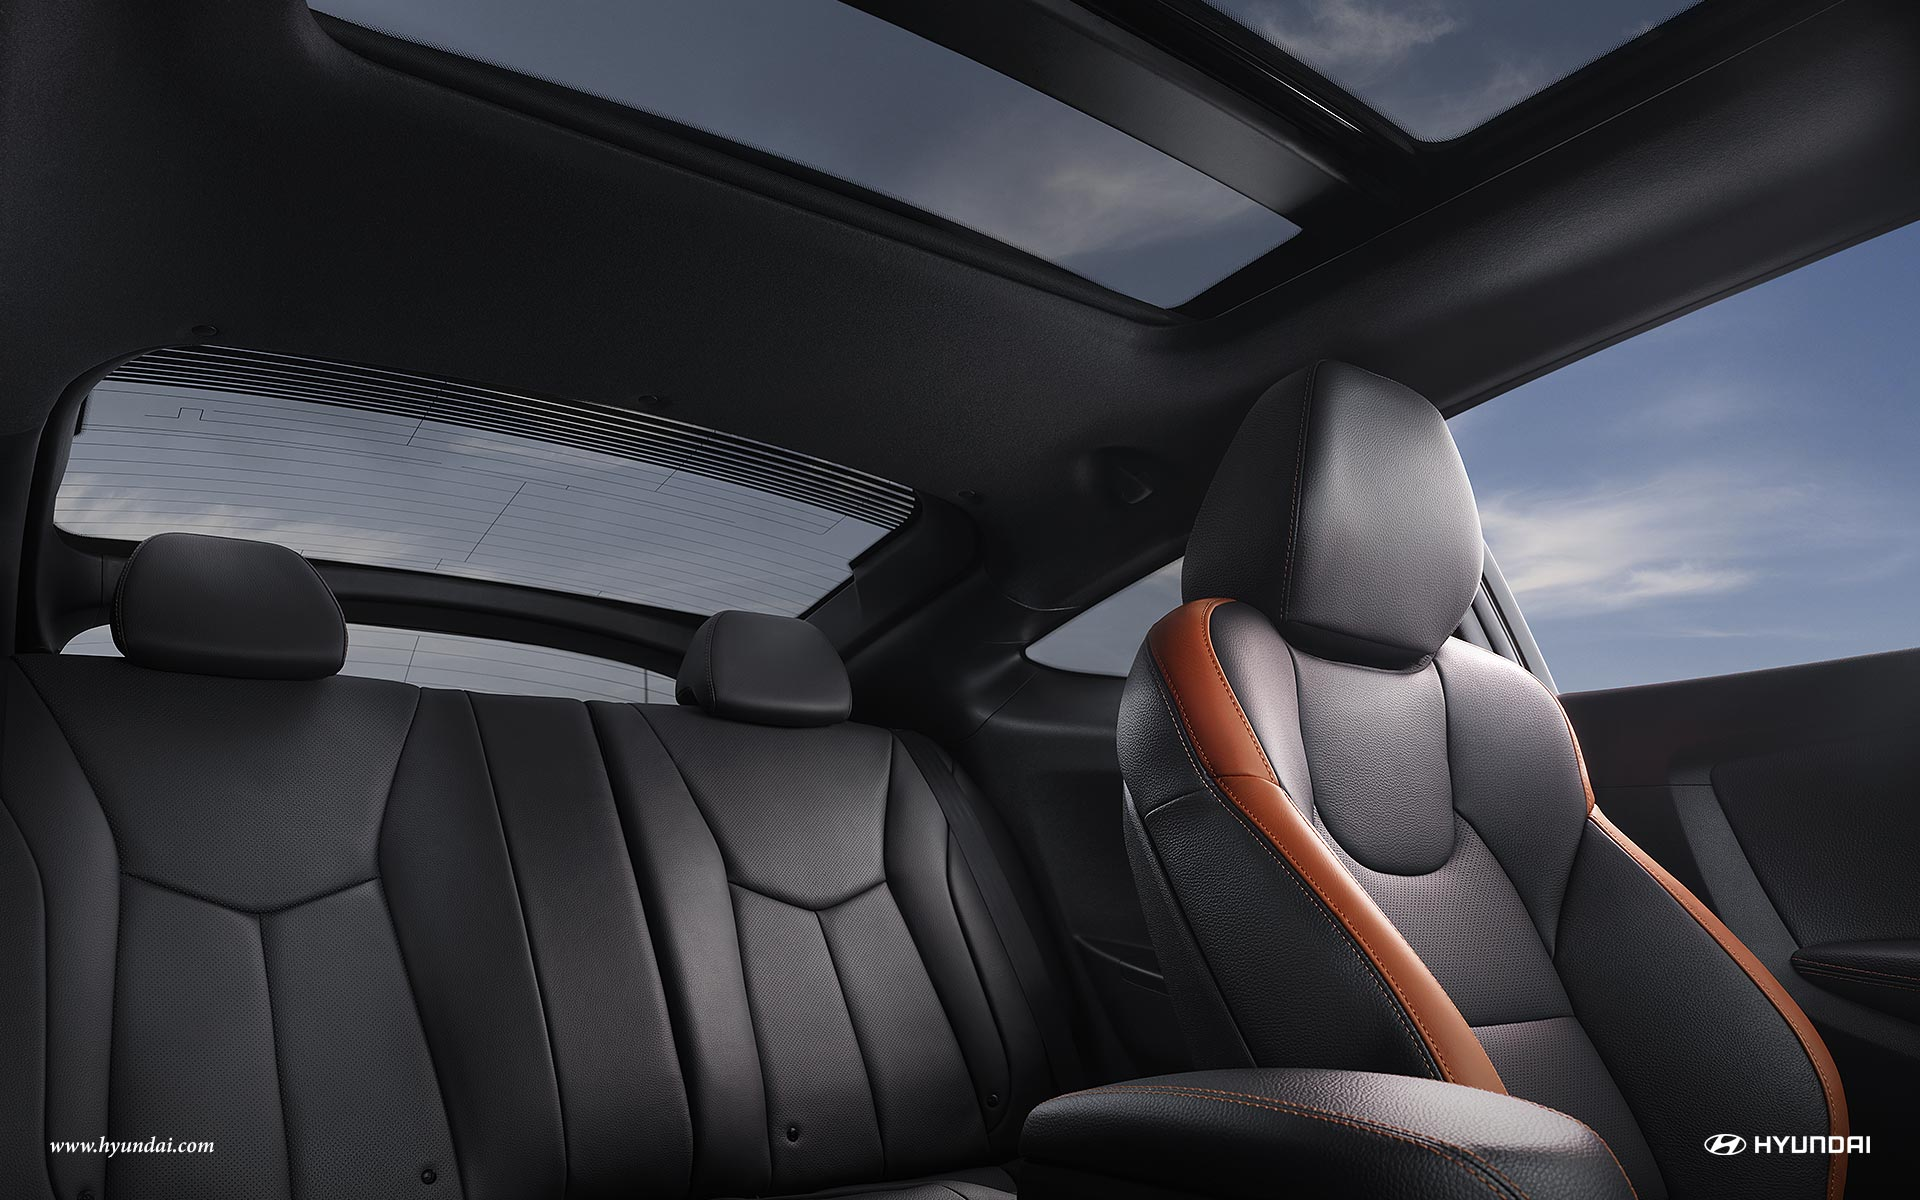 Good 2017 Hyundai Veloster Interior Seats Design Ideas